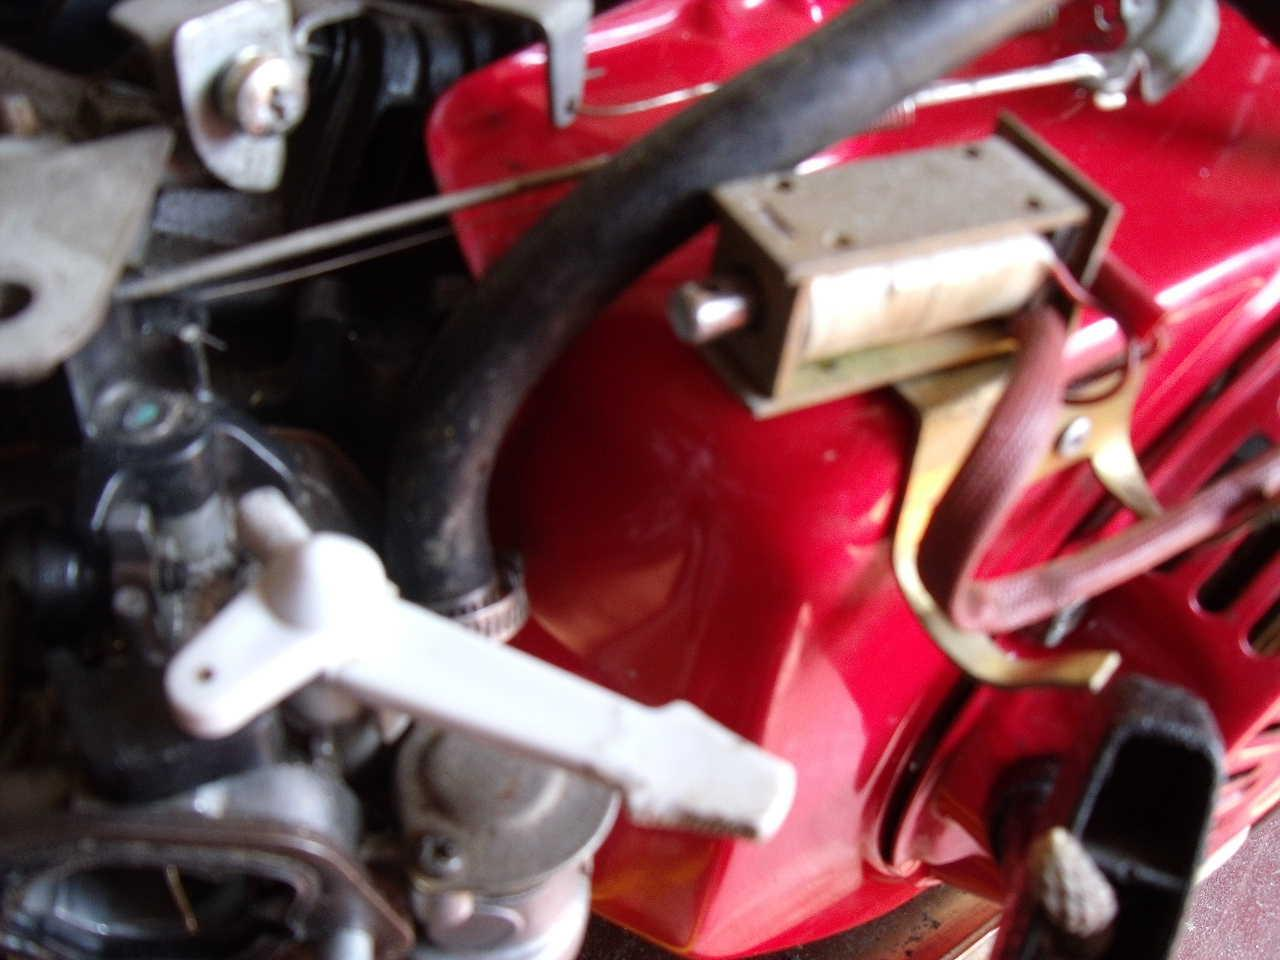 I Have Just Acquired A Secondhand Generator Powered By Gx160 Briggs And Stratton Carburetor Diagram Http Wwwjustanswercom Small The Picture Shows Solenoid With An Armature Made Original Is Missing White Choke Lever In Position Carburettor Housing Has